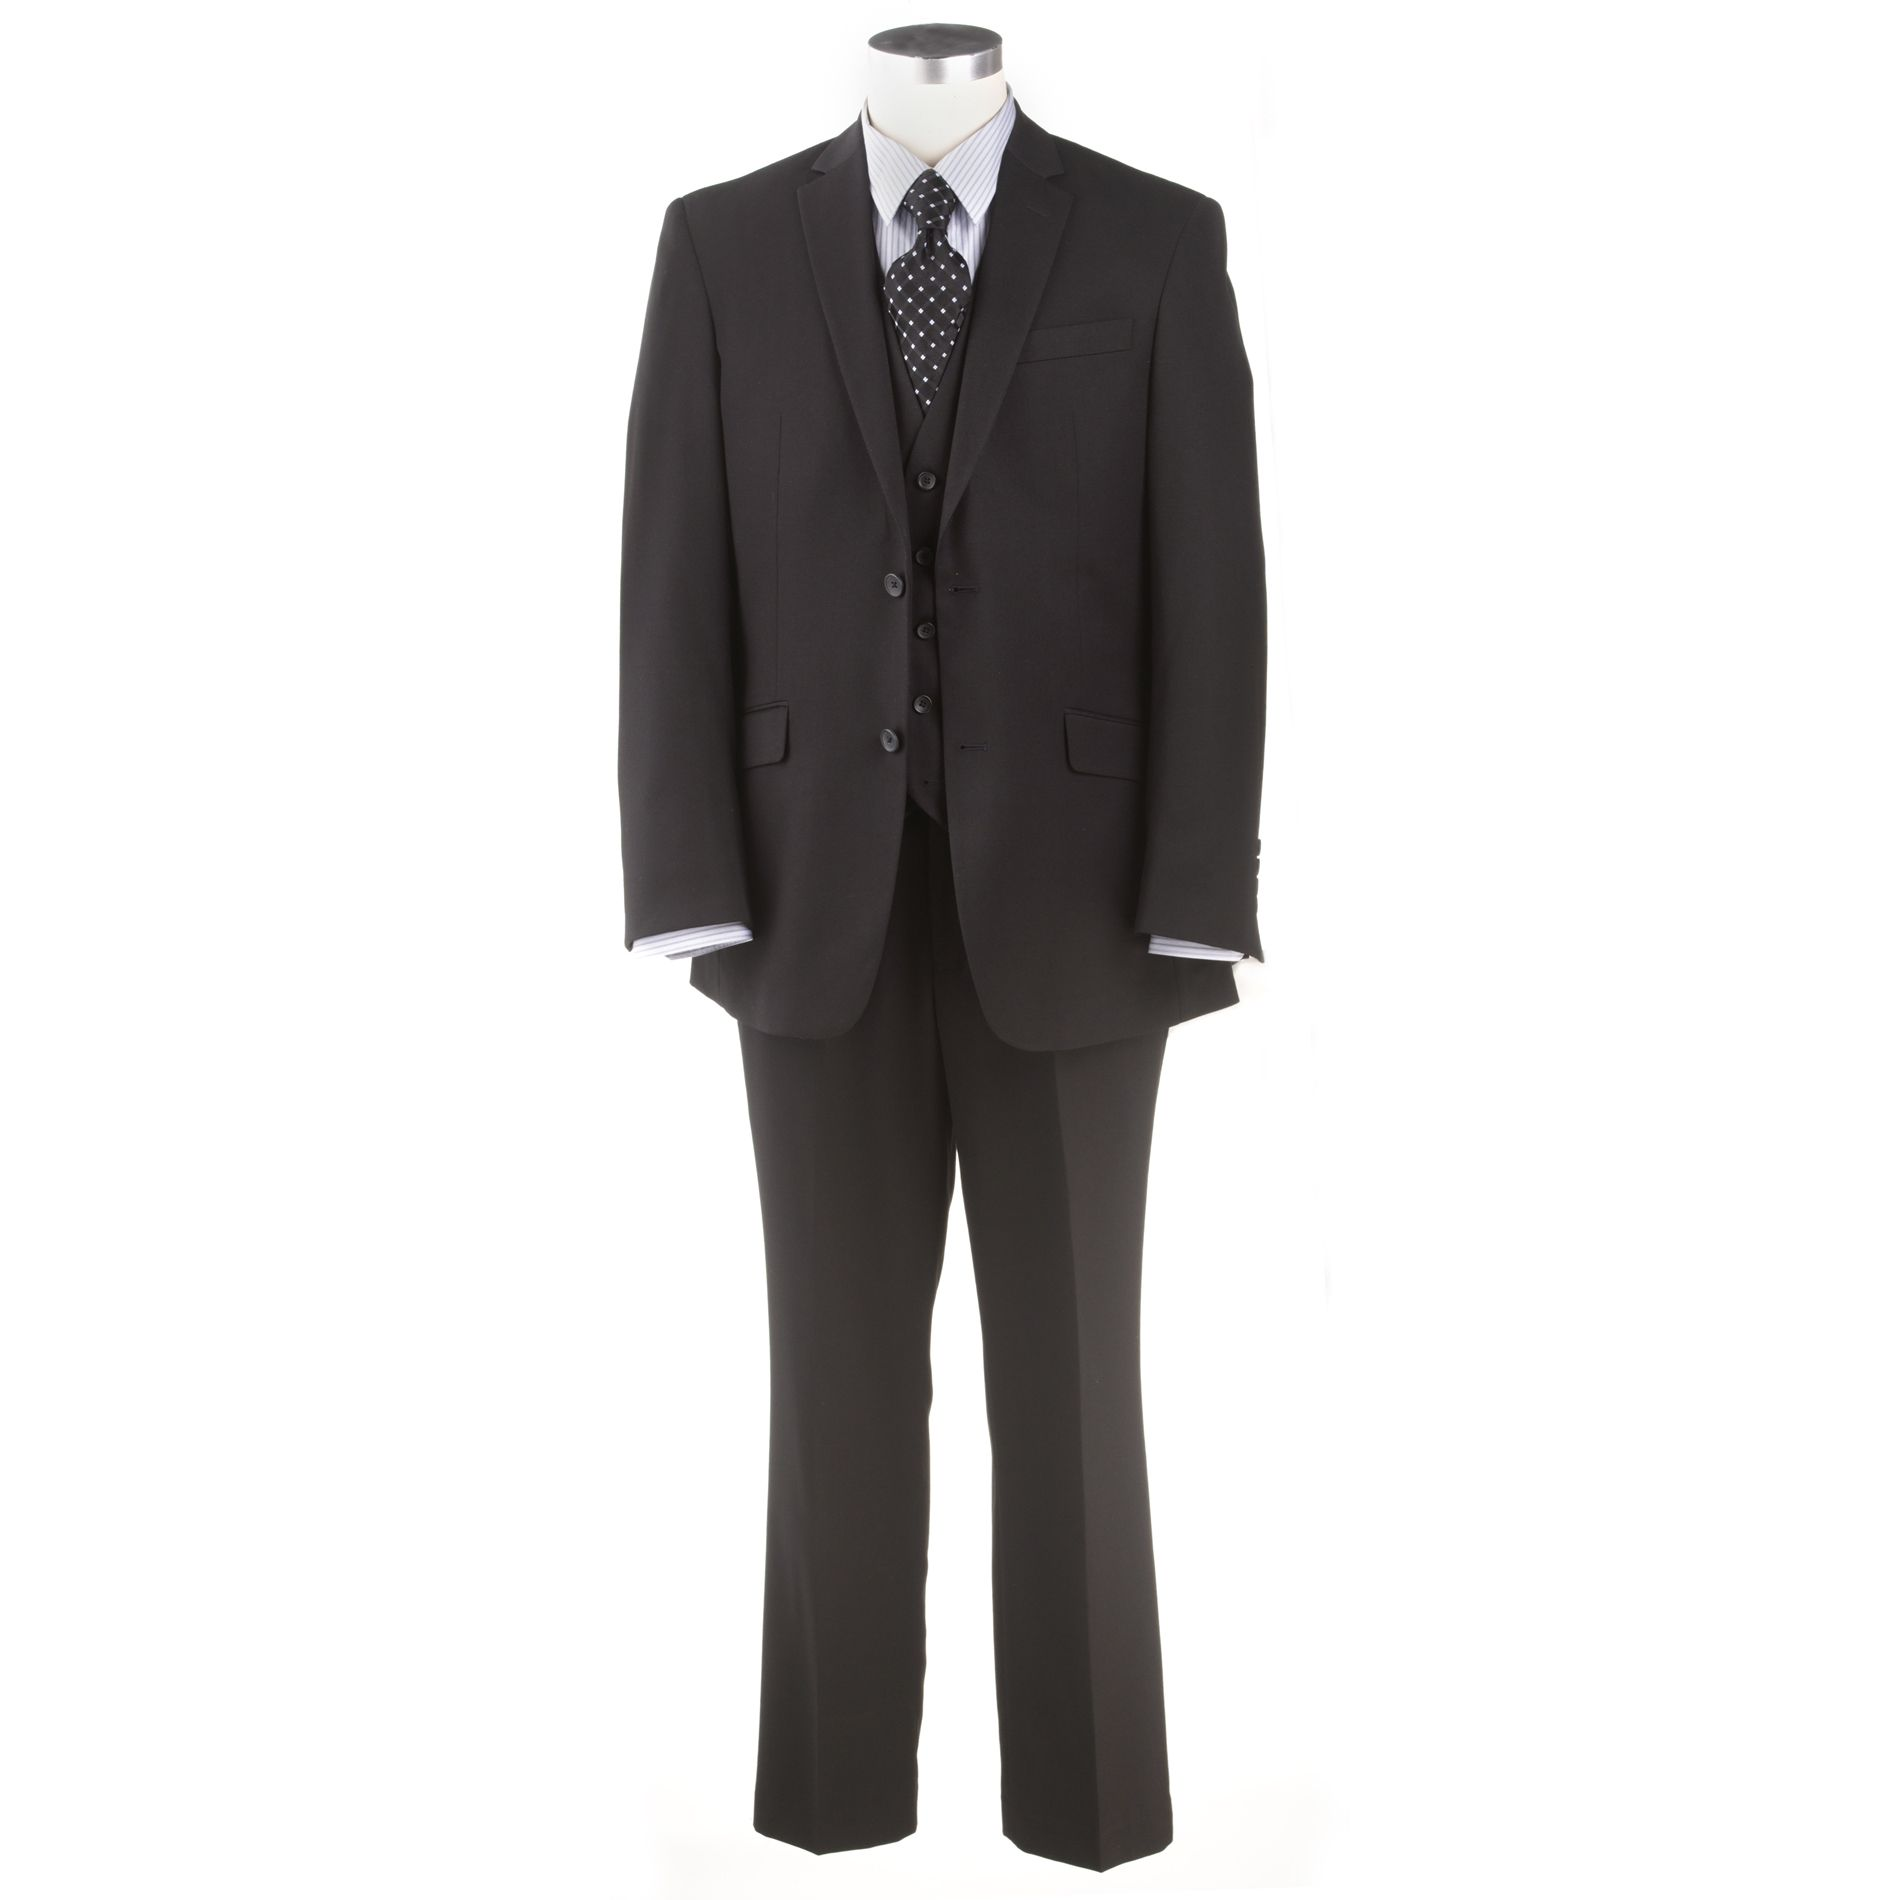 Structure Modern Suiting - Pinstripe Collection at Sears.com